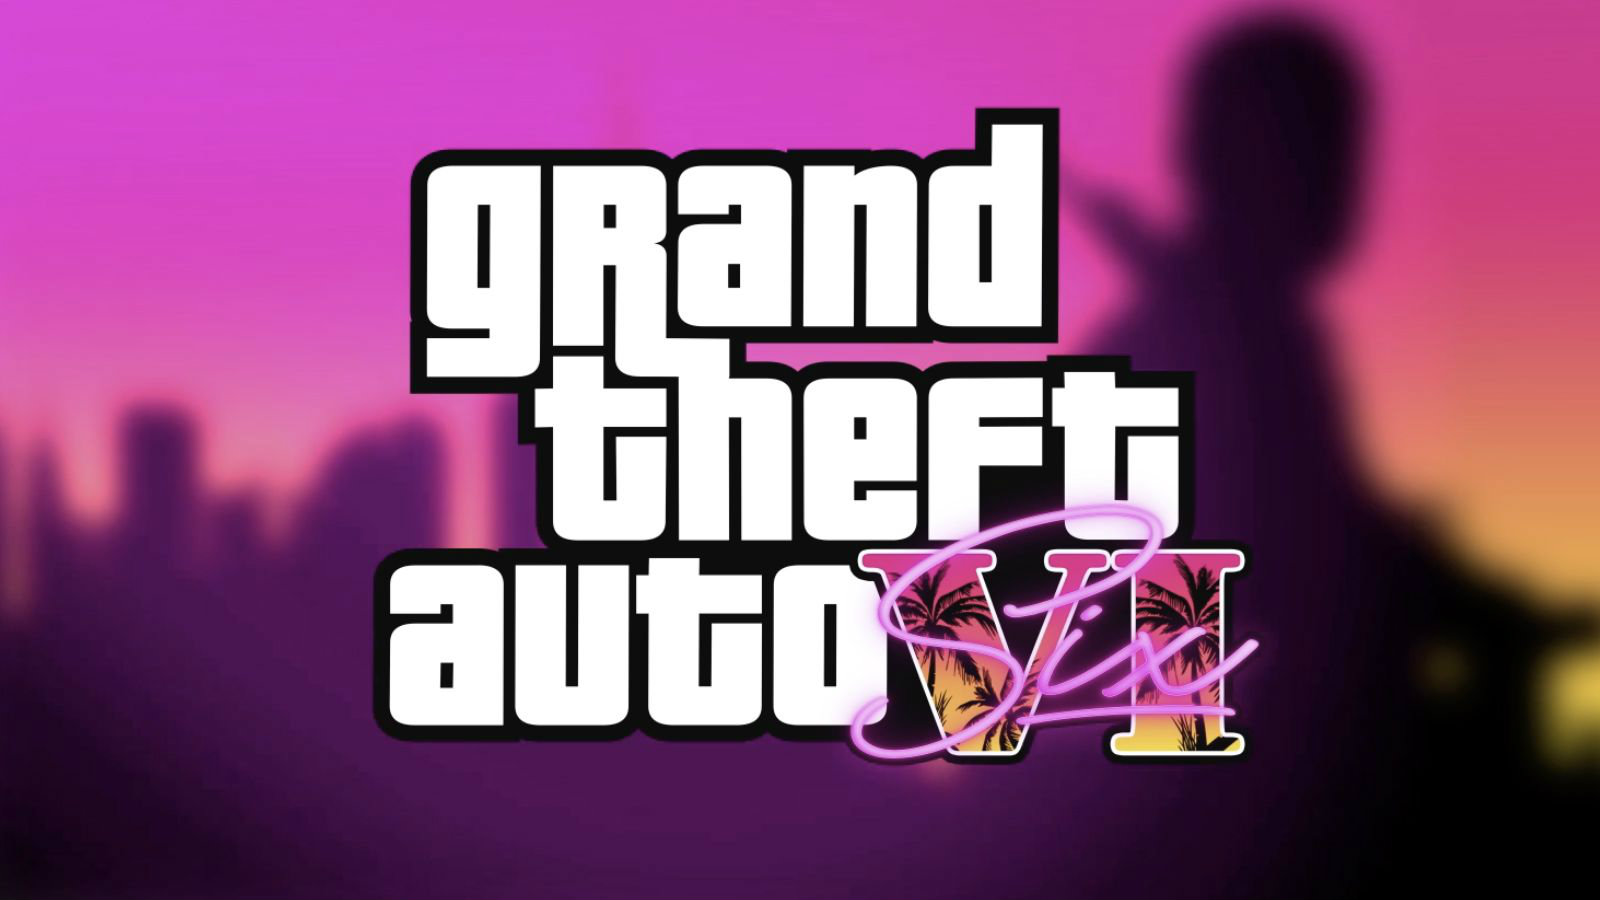 Grand Theft Auto 6 logo with Vice City background